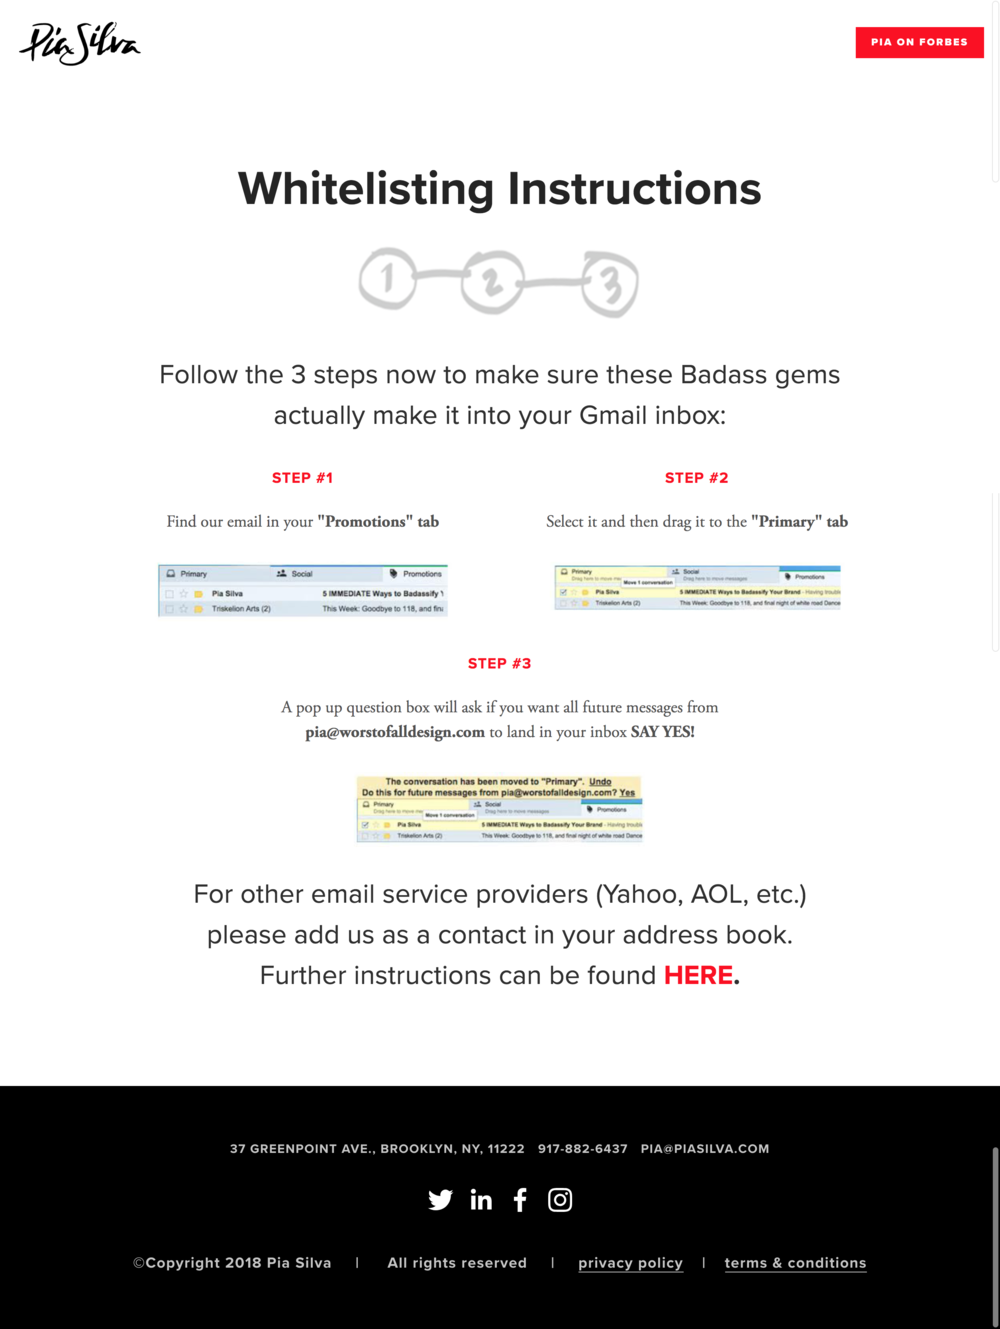 branded page how to whitelist